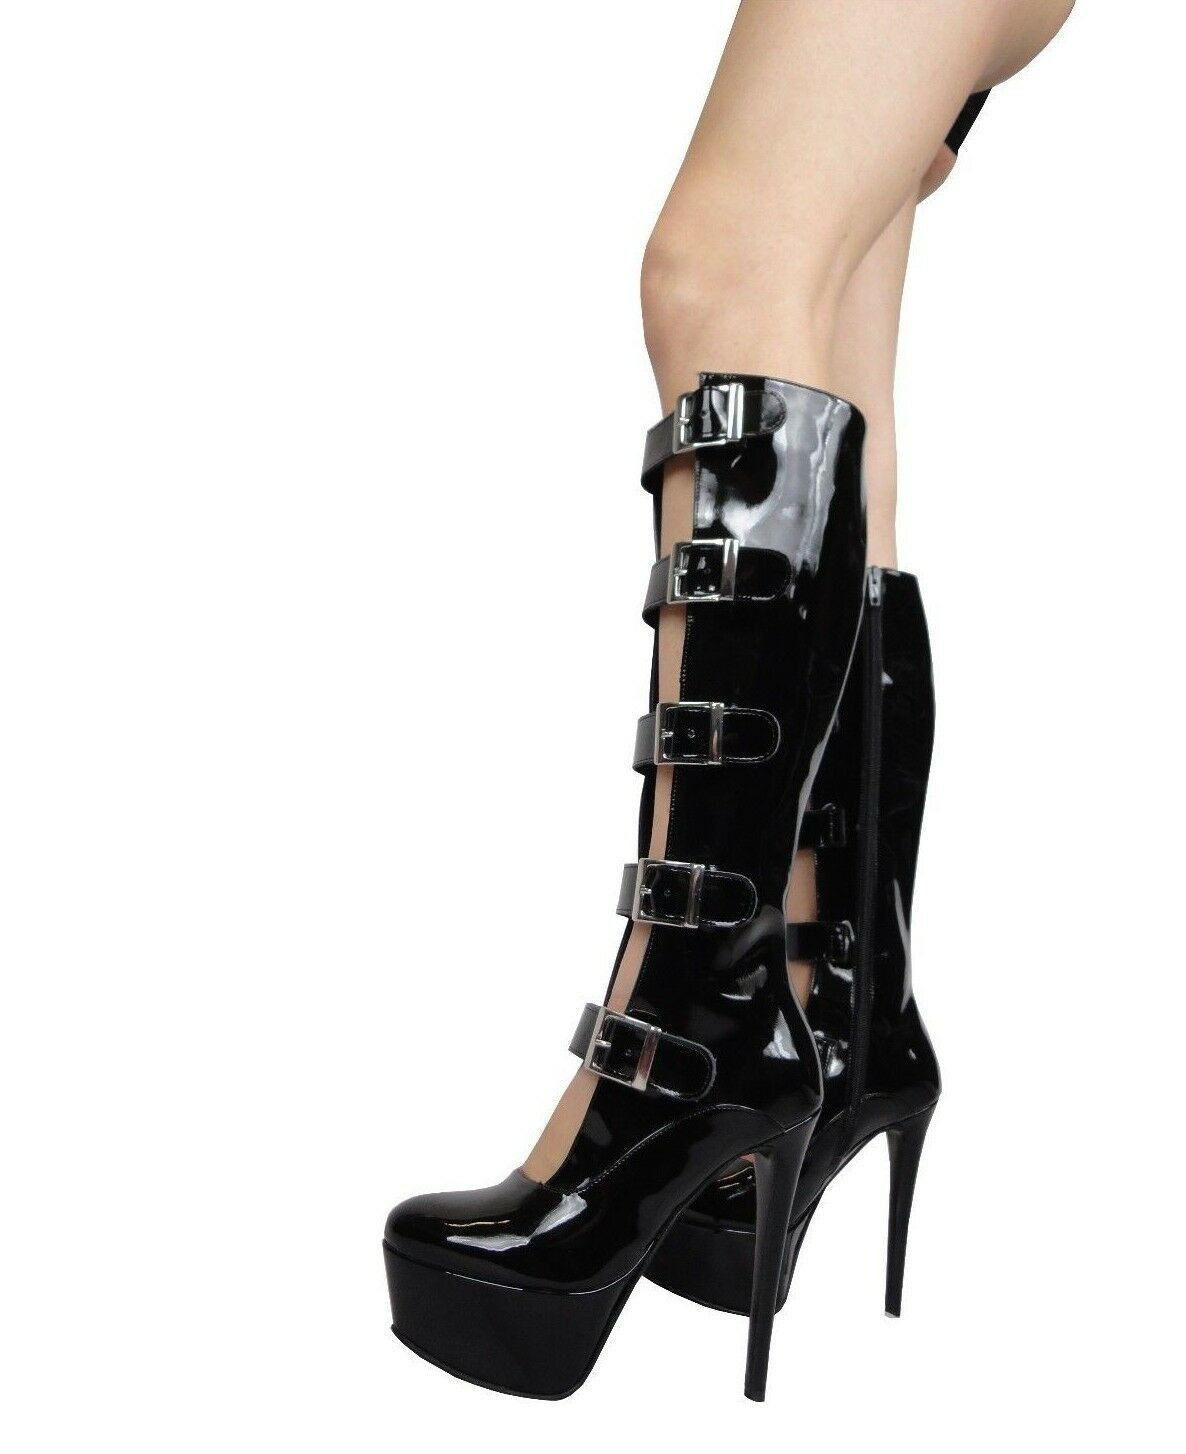 GIOHEL 5CM PLATFORM KNEE HIGH BOOTS STIEFEL BOOTS BOOTS BOOTS SILVER BUCKLES BLACK BLACK 35 877bdd